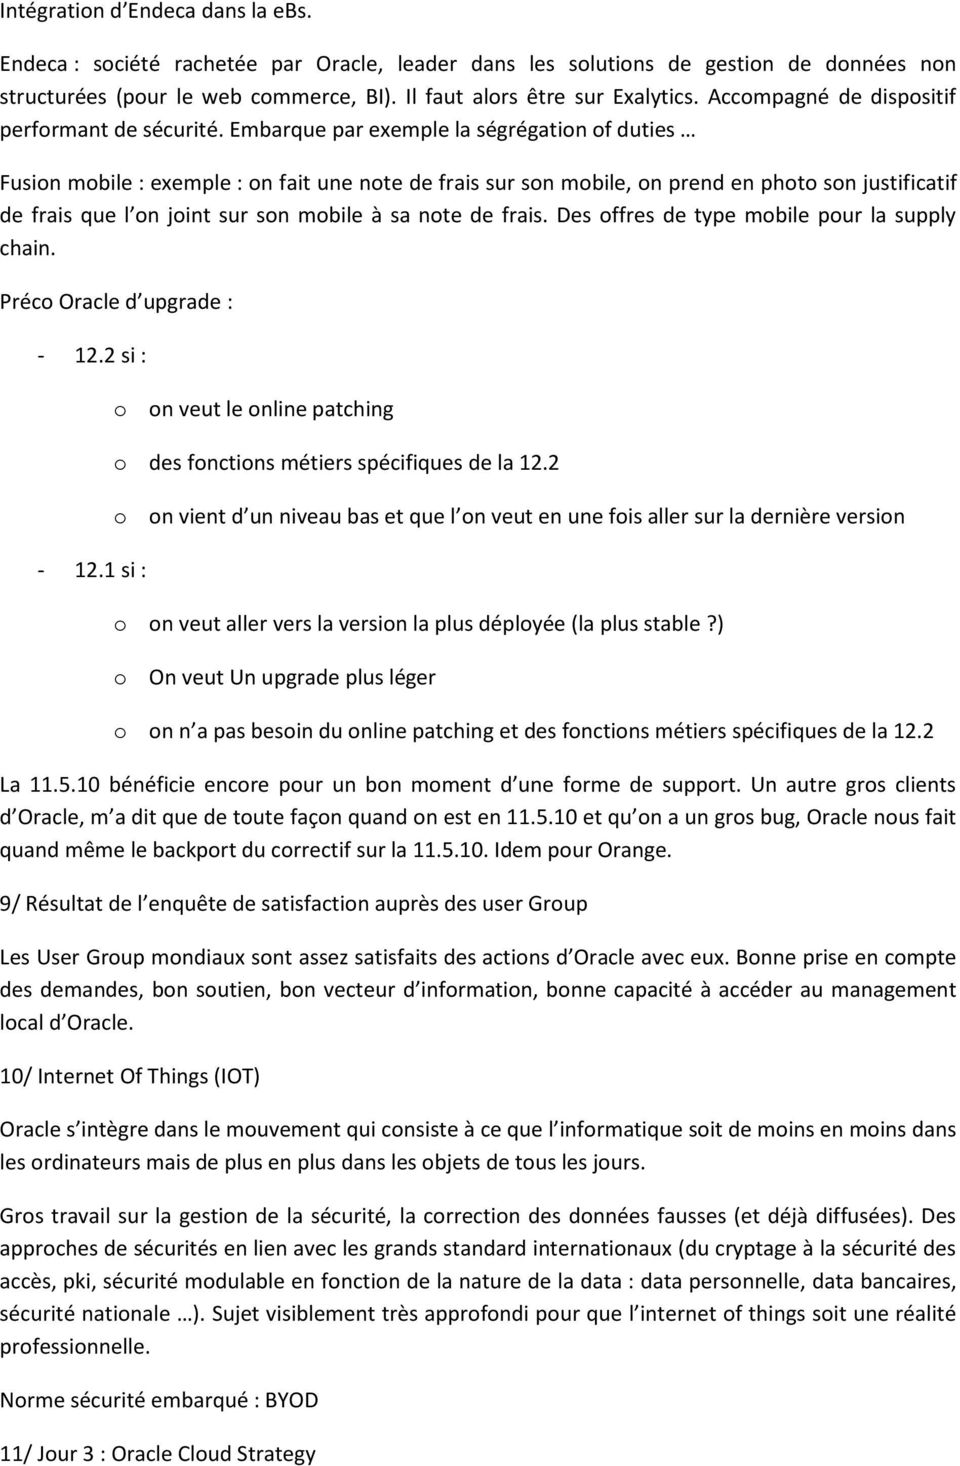 Embarque par exemple la ségrégation of duties Fusion mobile : exemple : on fait une note de frais sur son mobile, on prend en photo son justificatif de frais que l on joint sur son mobile à sa note